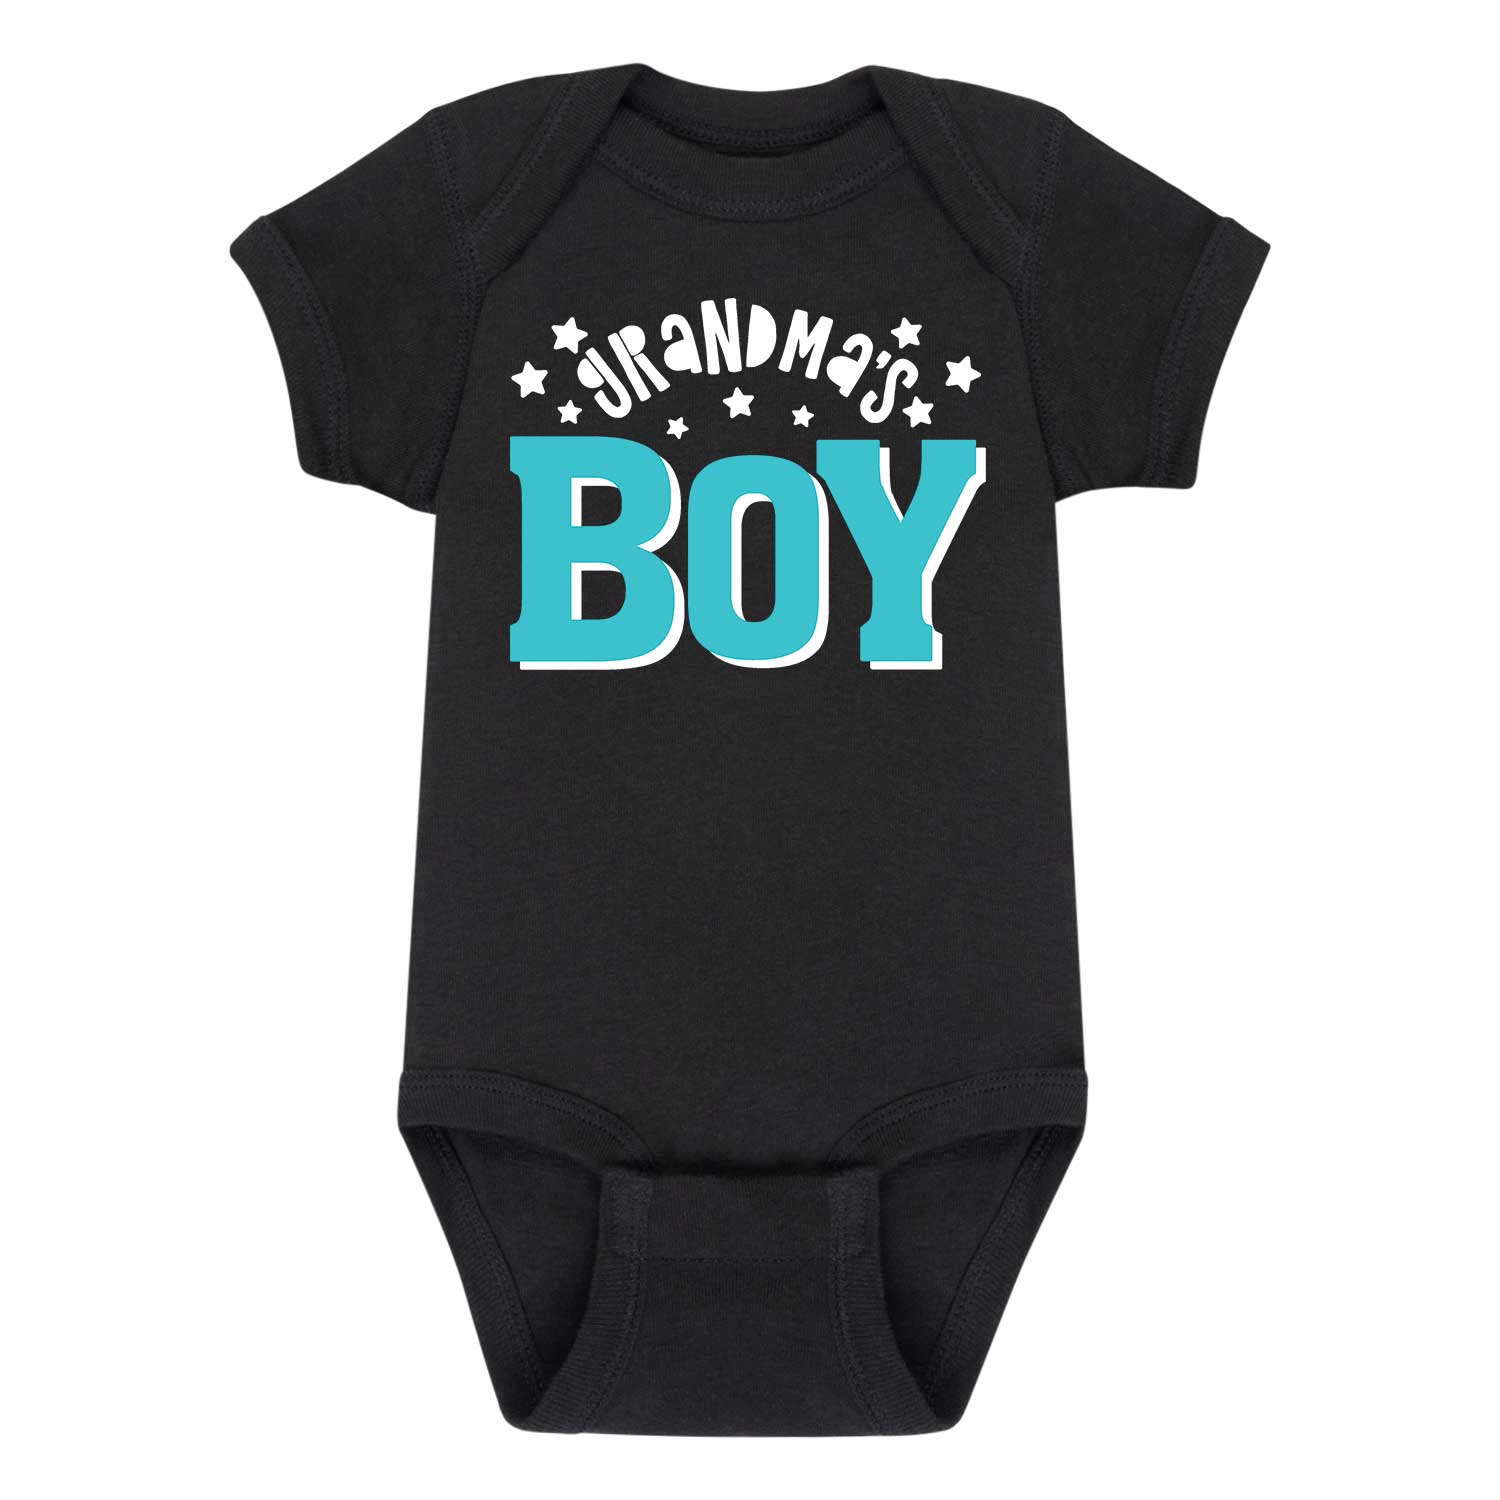 Grandma's Boy - Infant One Piece